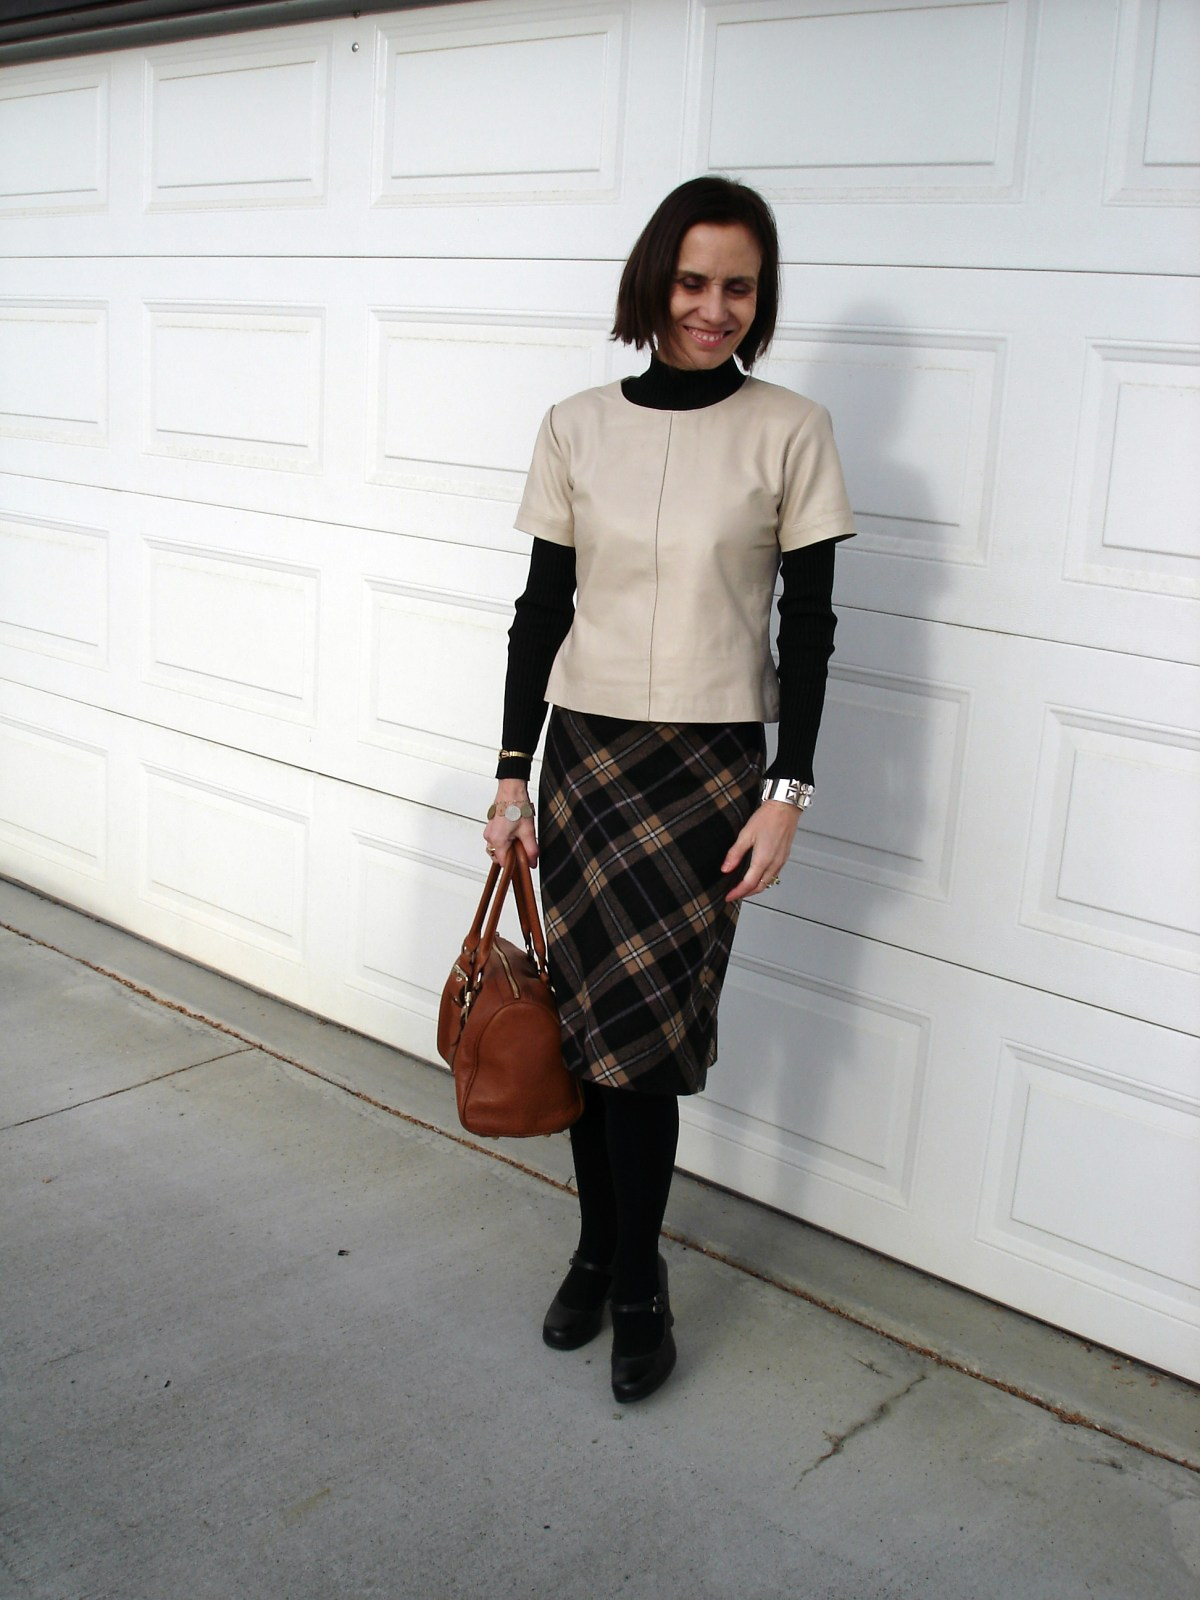 stylist in cream leather shell, plaid skirt, Mary Janes, layering top carrying a satchel